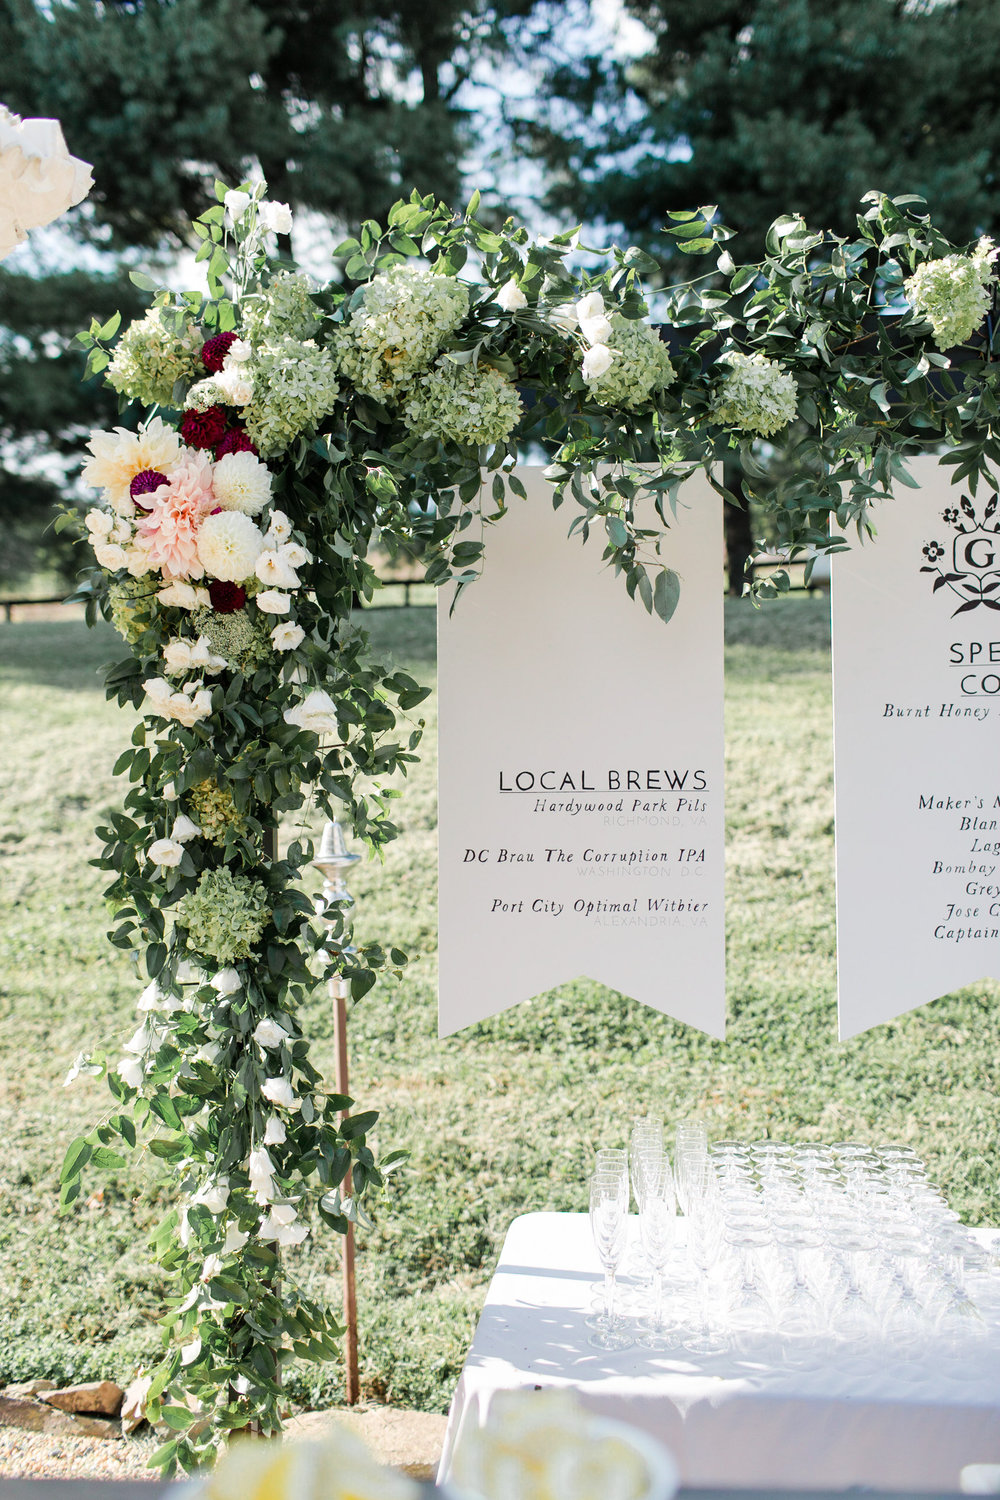 Floral Decor for Bar at wedding.jpg